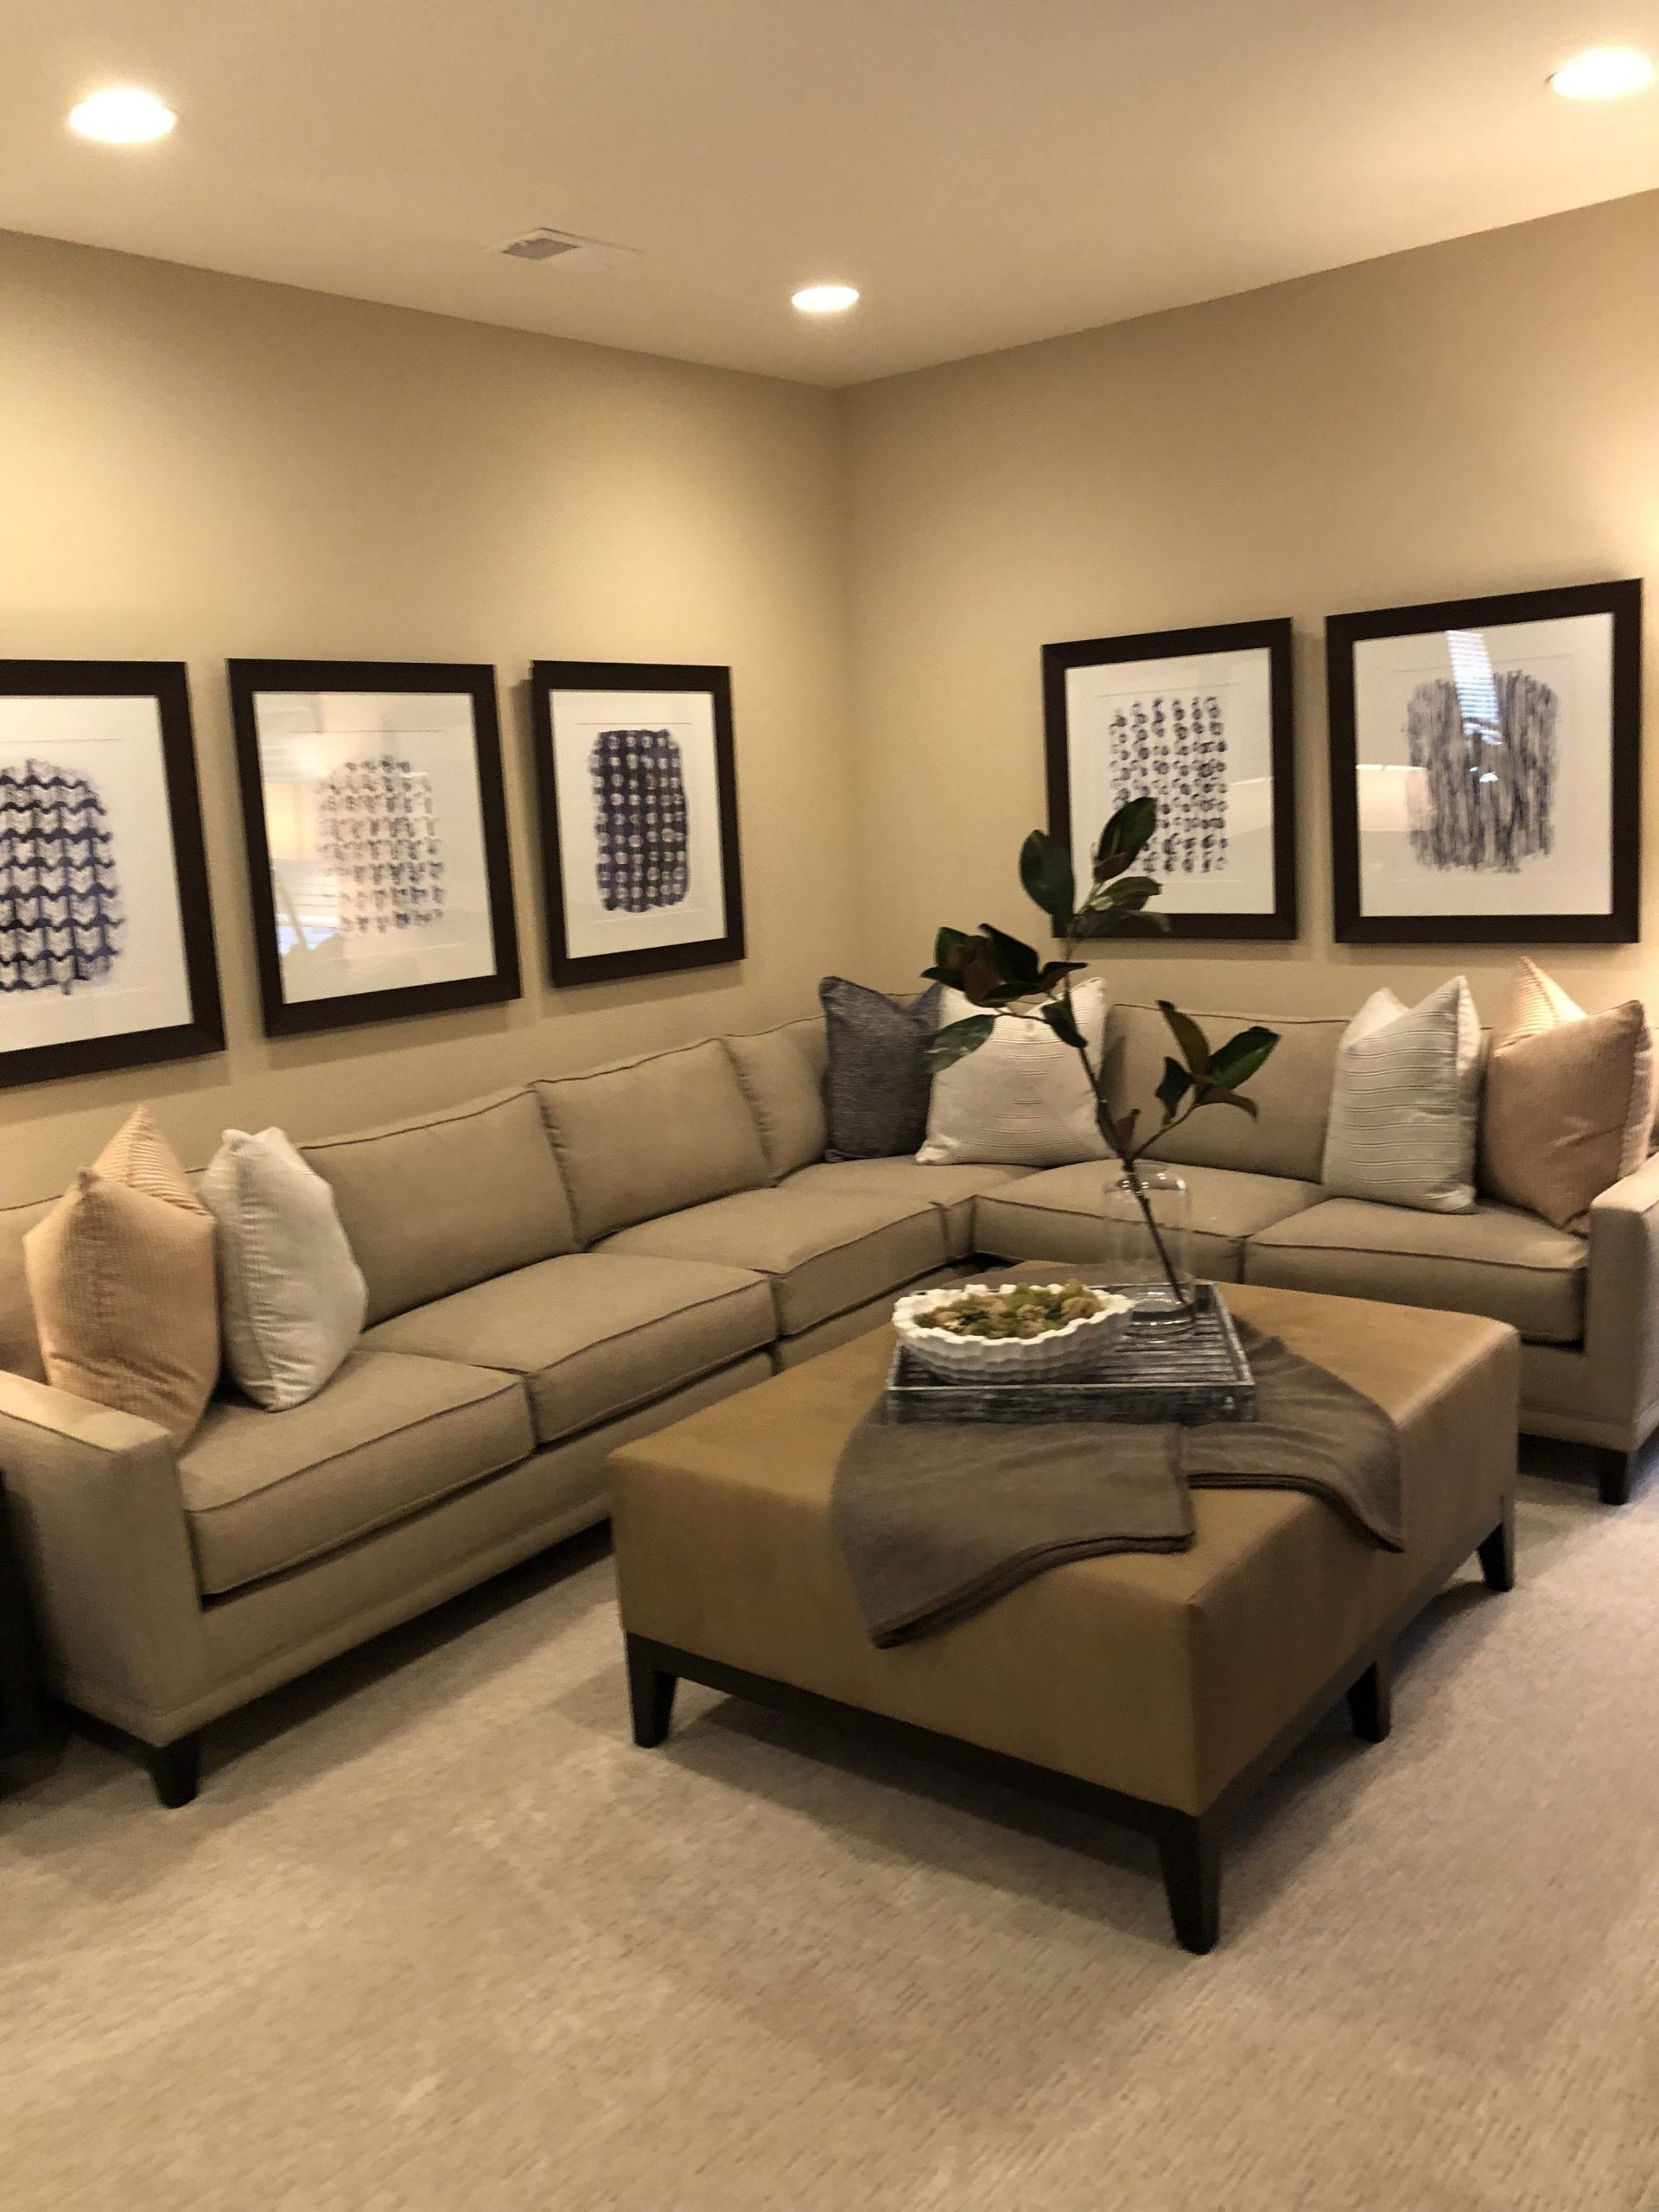 Sofa Set Design For Living Room Awesome Decorating Ideas Image By Mary Arboleda In 2020 Living Room Sofa Set Furniture Sofa Set Living Room Sofa Design